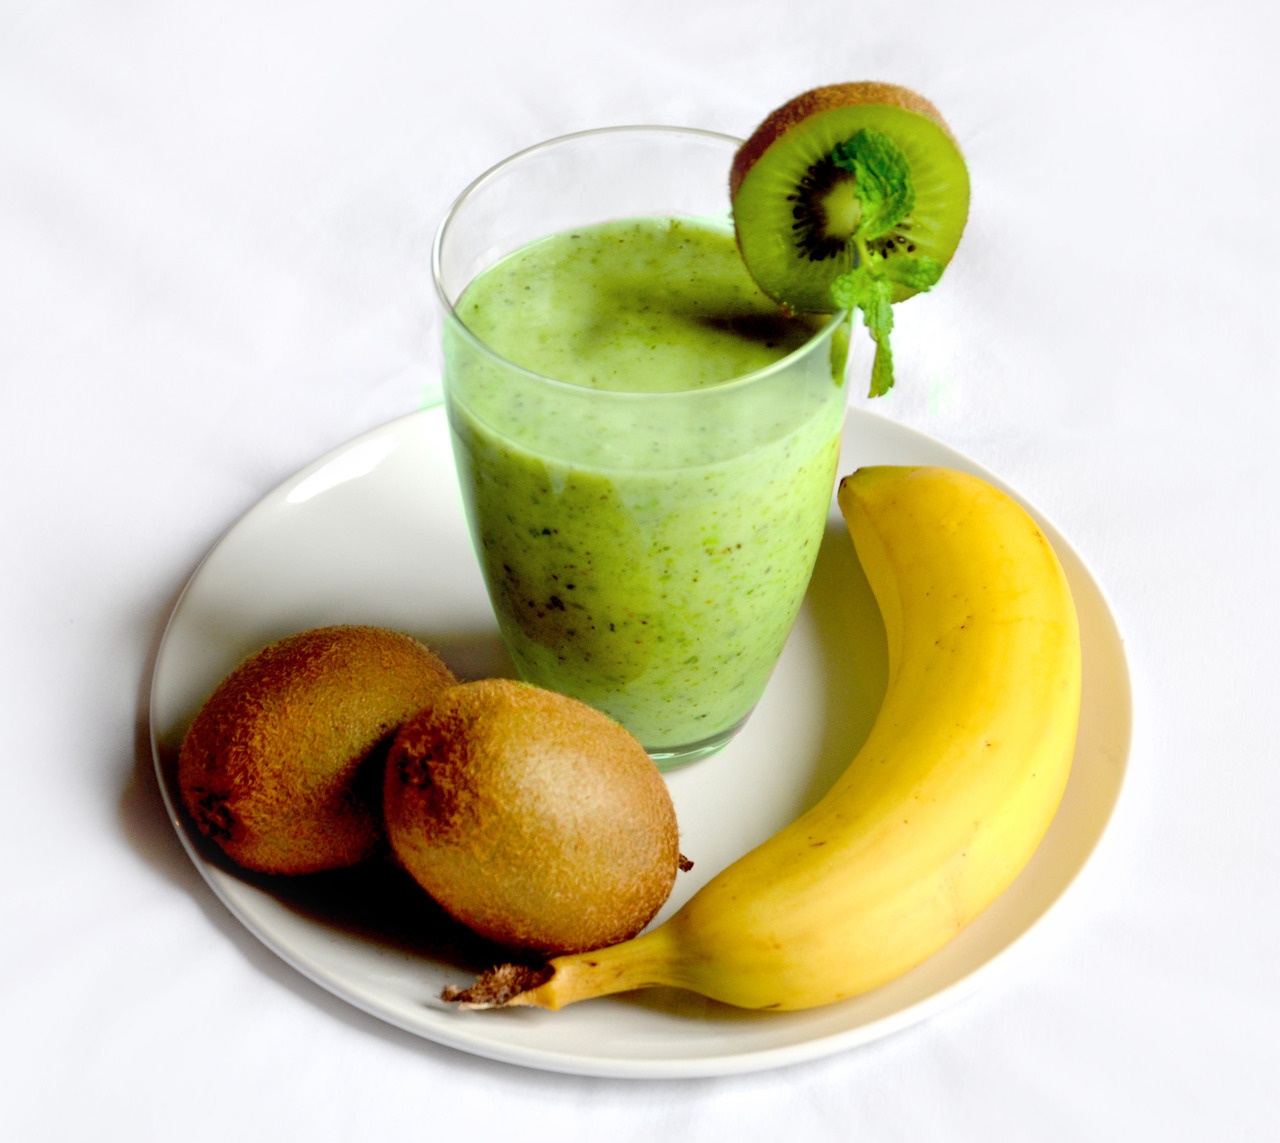 alive-still-need2live: The Hulk Smoothie This green smoothie gives you awesome superpowers! Perfect post workout snack! 1 banana 2 kiwis 5 grapes 1TS fresh peas (yes yes! Peas are the secret ingredient!) A splash of (soy/almond) milk A few mint leaves